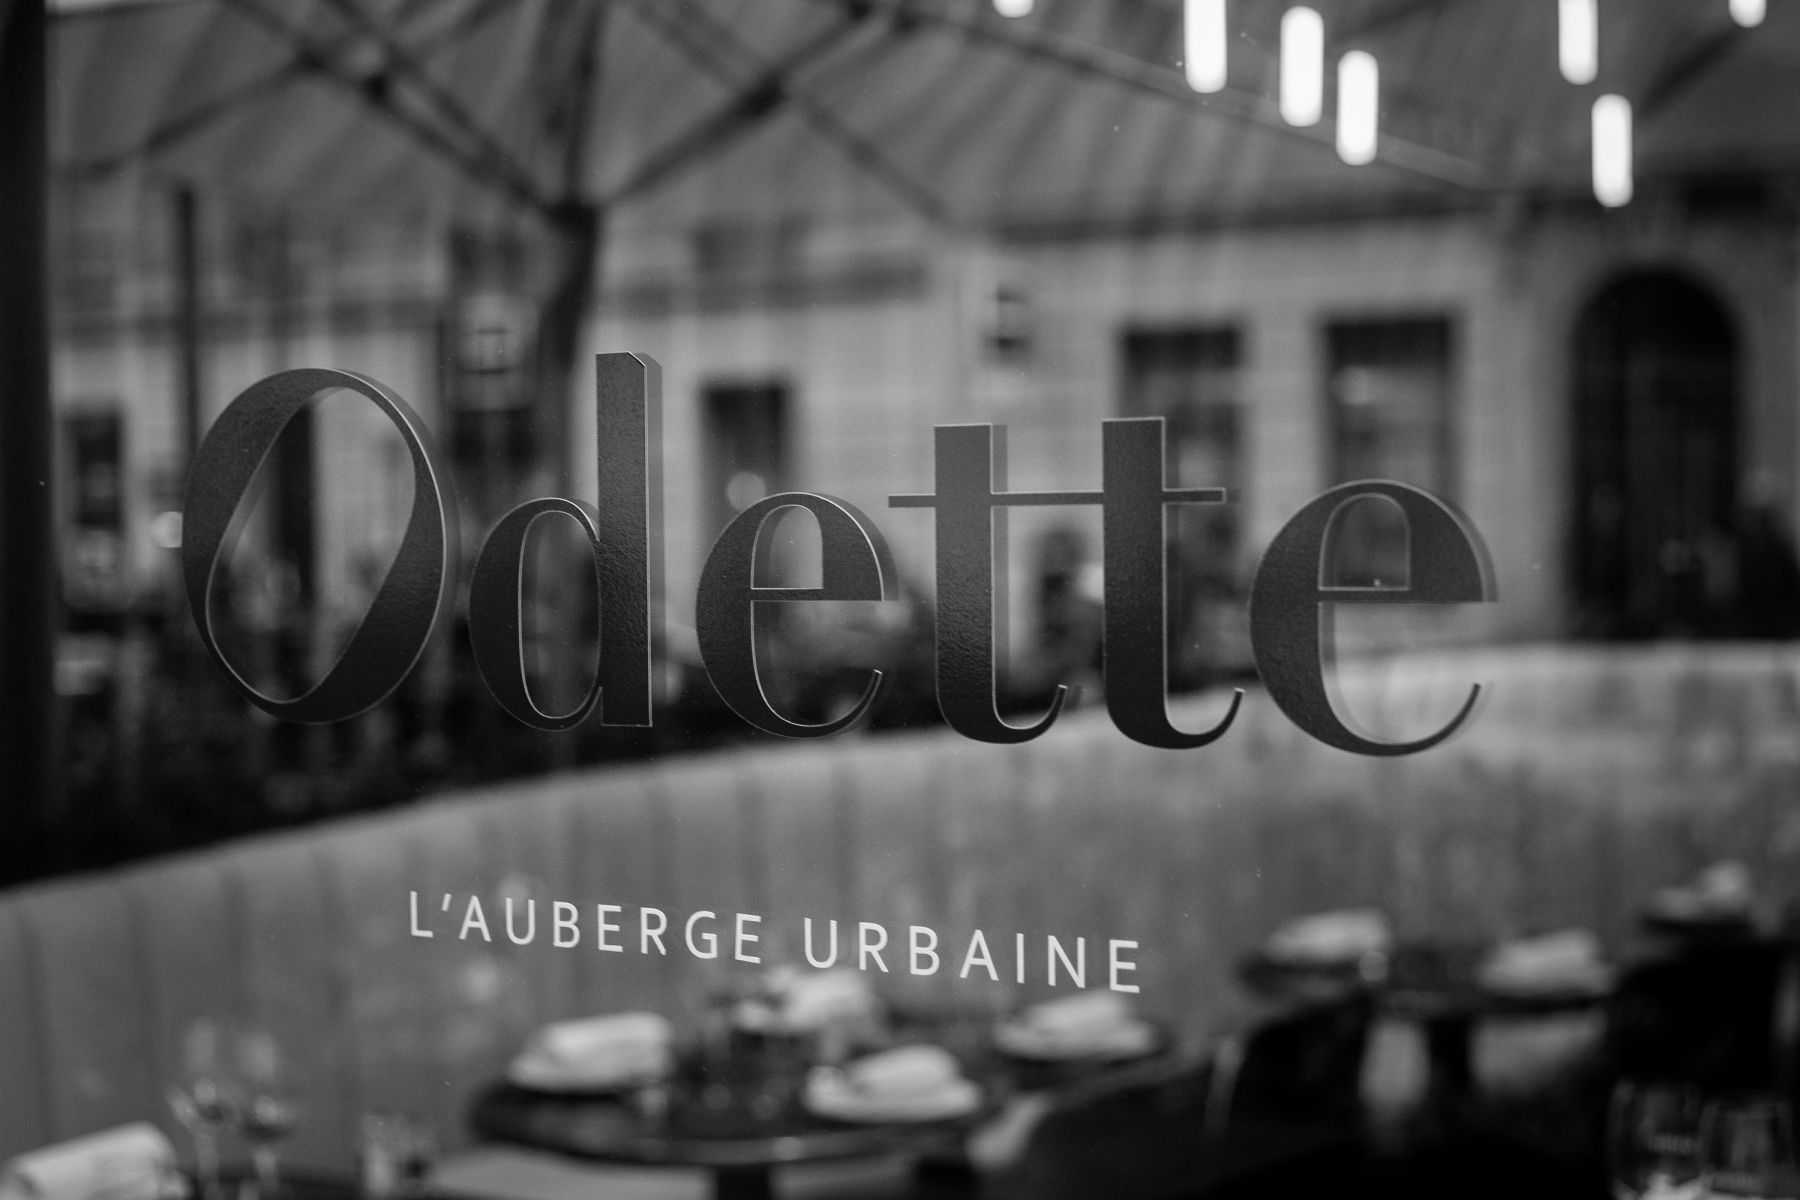 """Odette"" The urban inn"